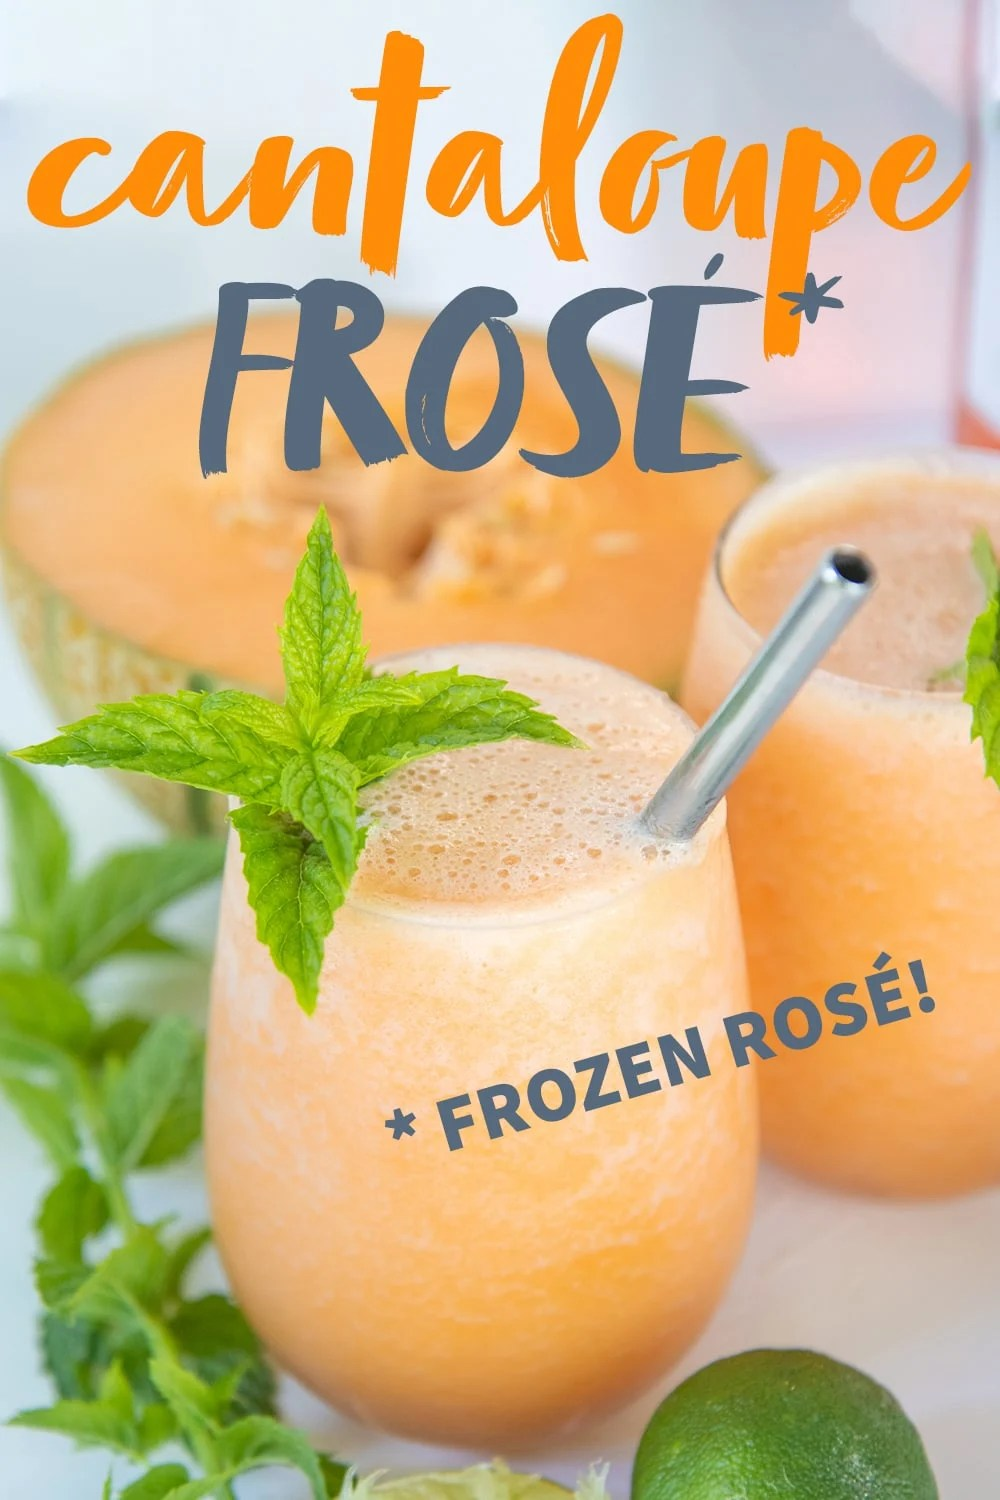 """Two glasses filled with cantaloupe frosé, garnished with mint and straws. A halved cantaloupe and mint sprigs surround the glasses. A text overlay reads """"Cantaloupe Frosé *Frozen Rosé"""""""